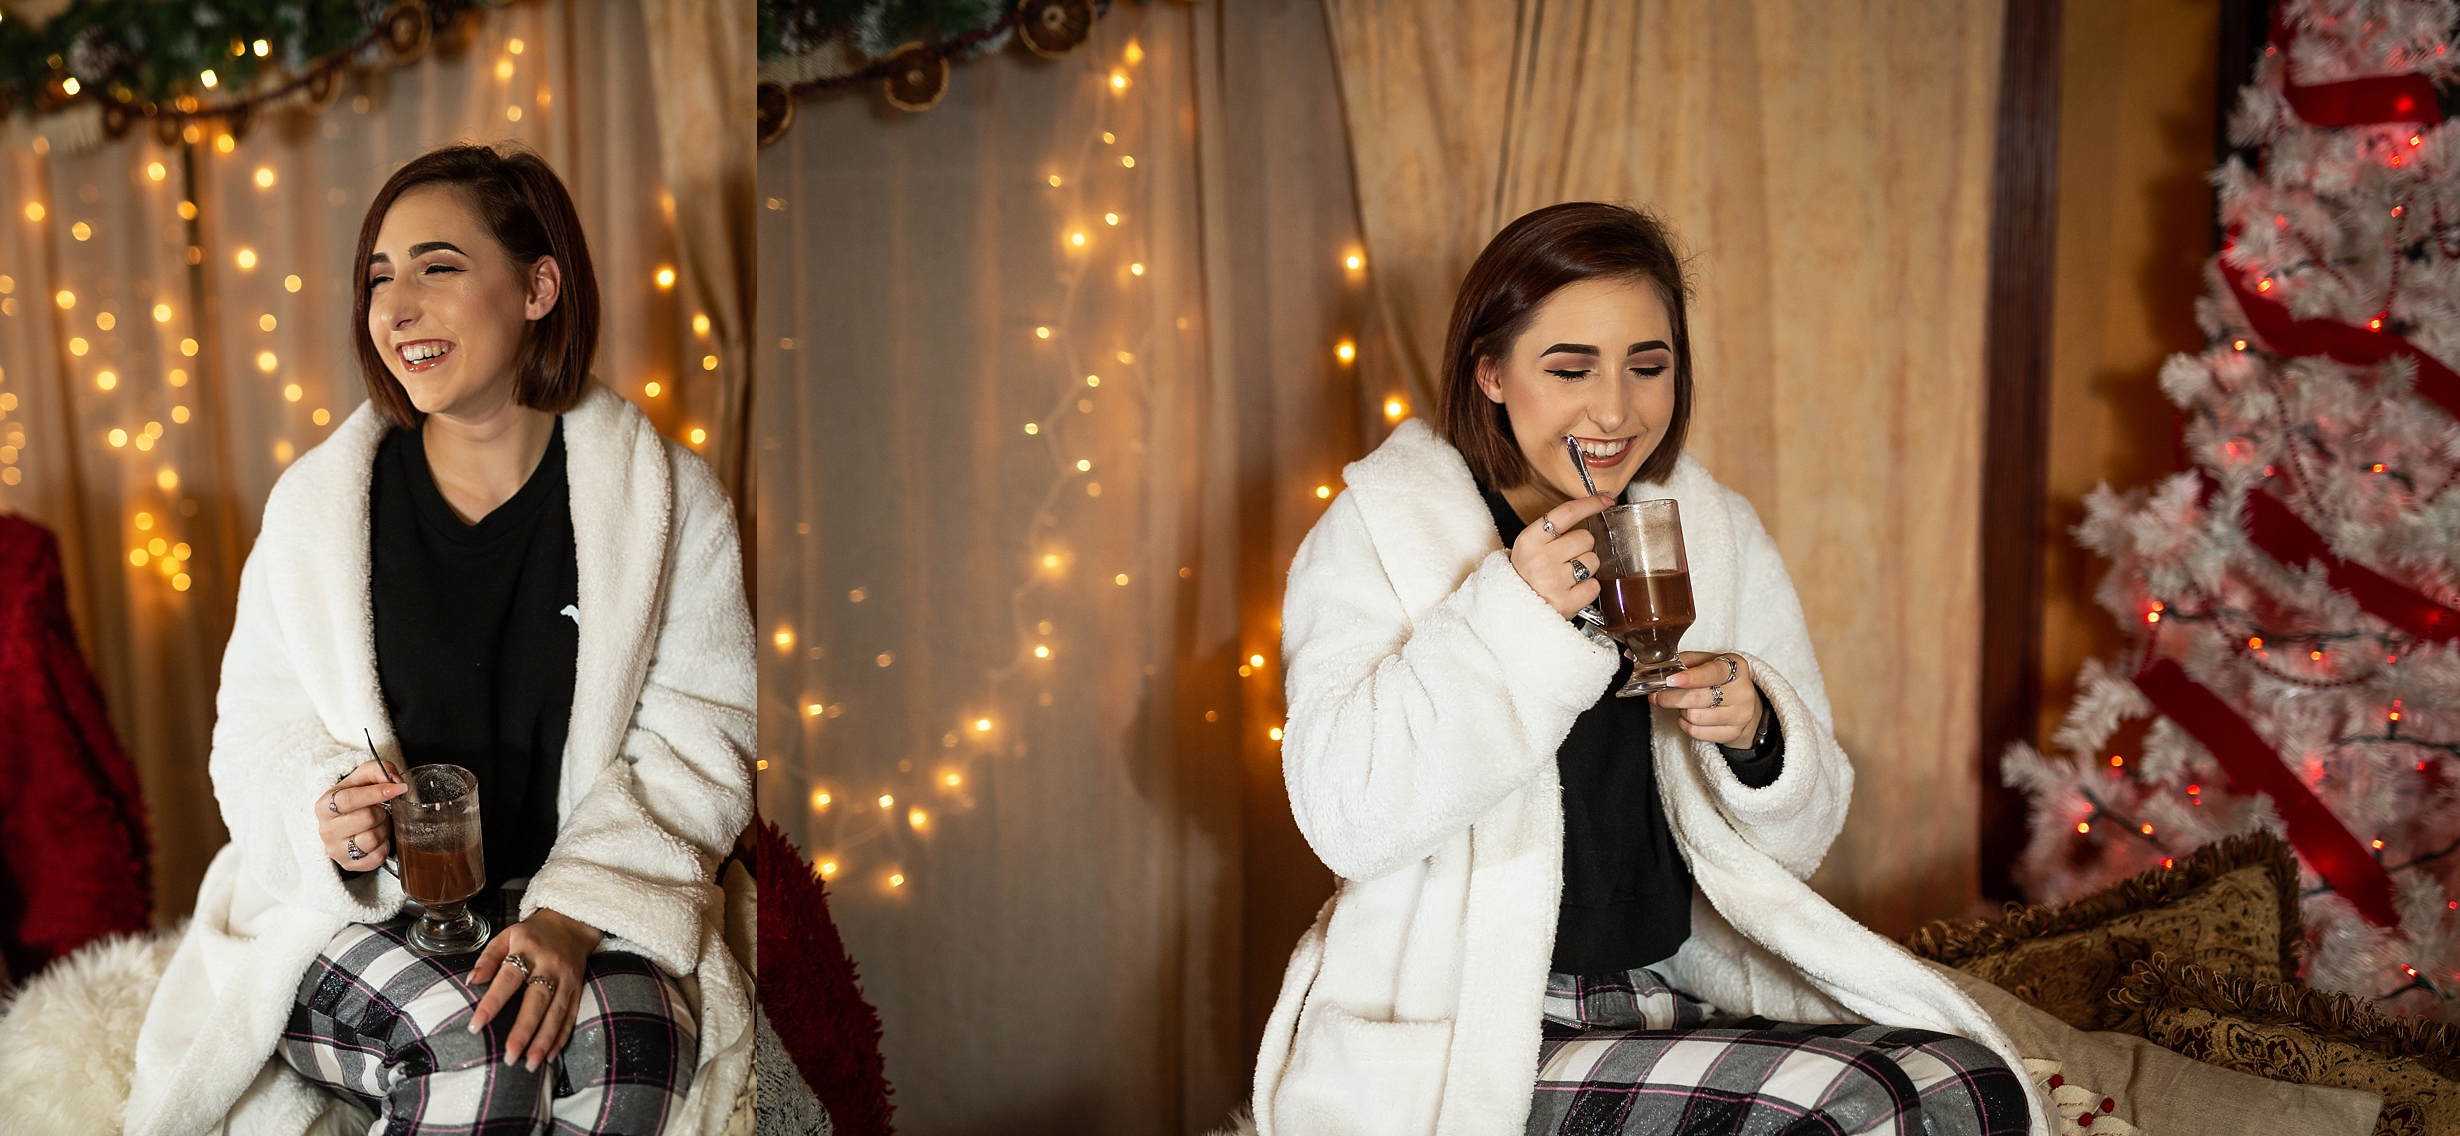 Jessica Miladinovich at 2019 VIP Representative Christmas Pj Party drinking hot cocoa